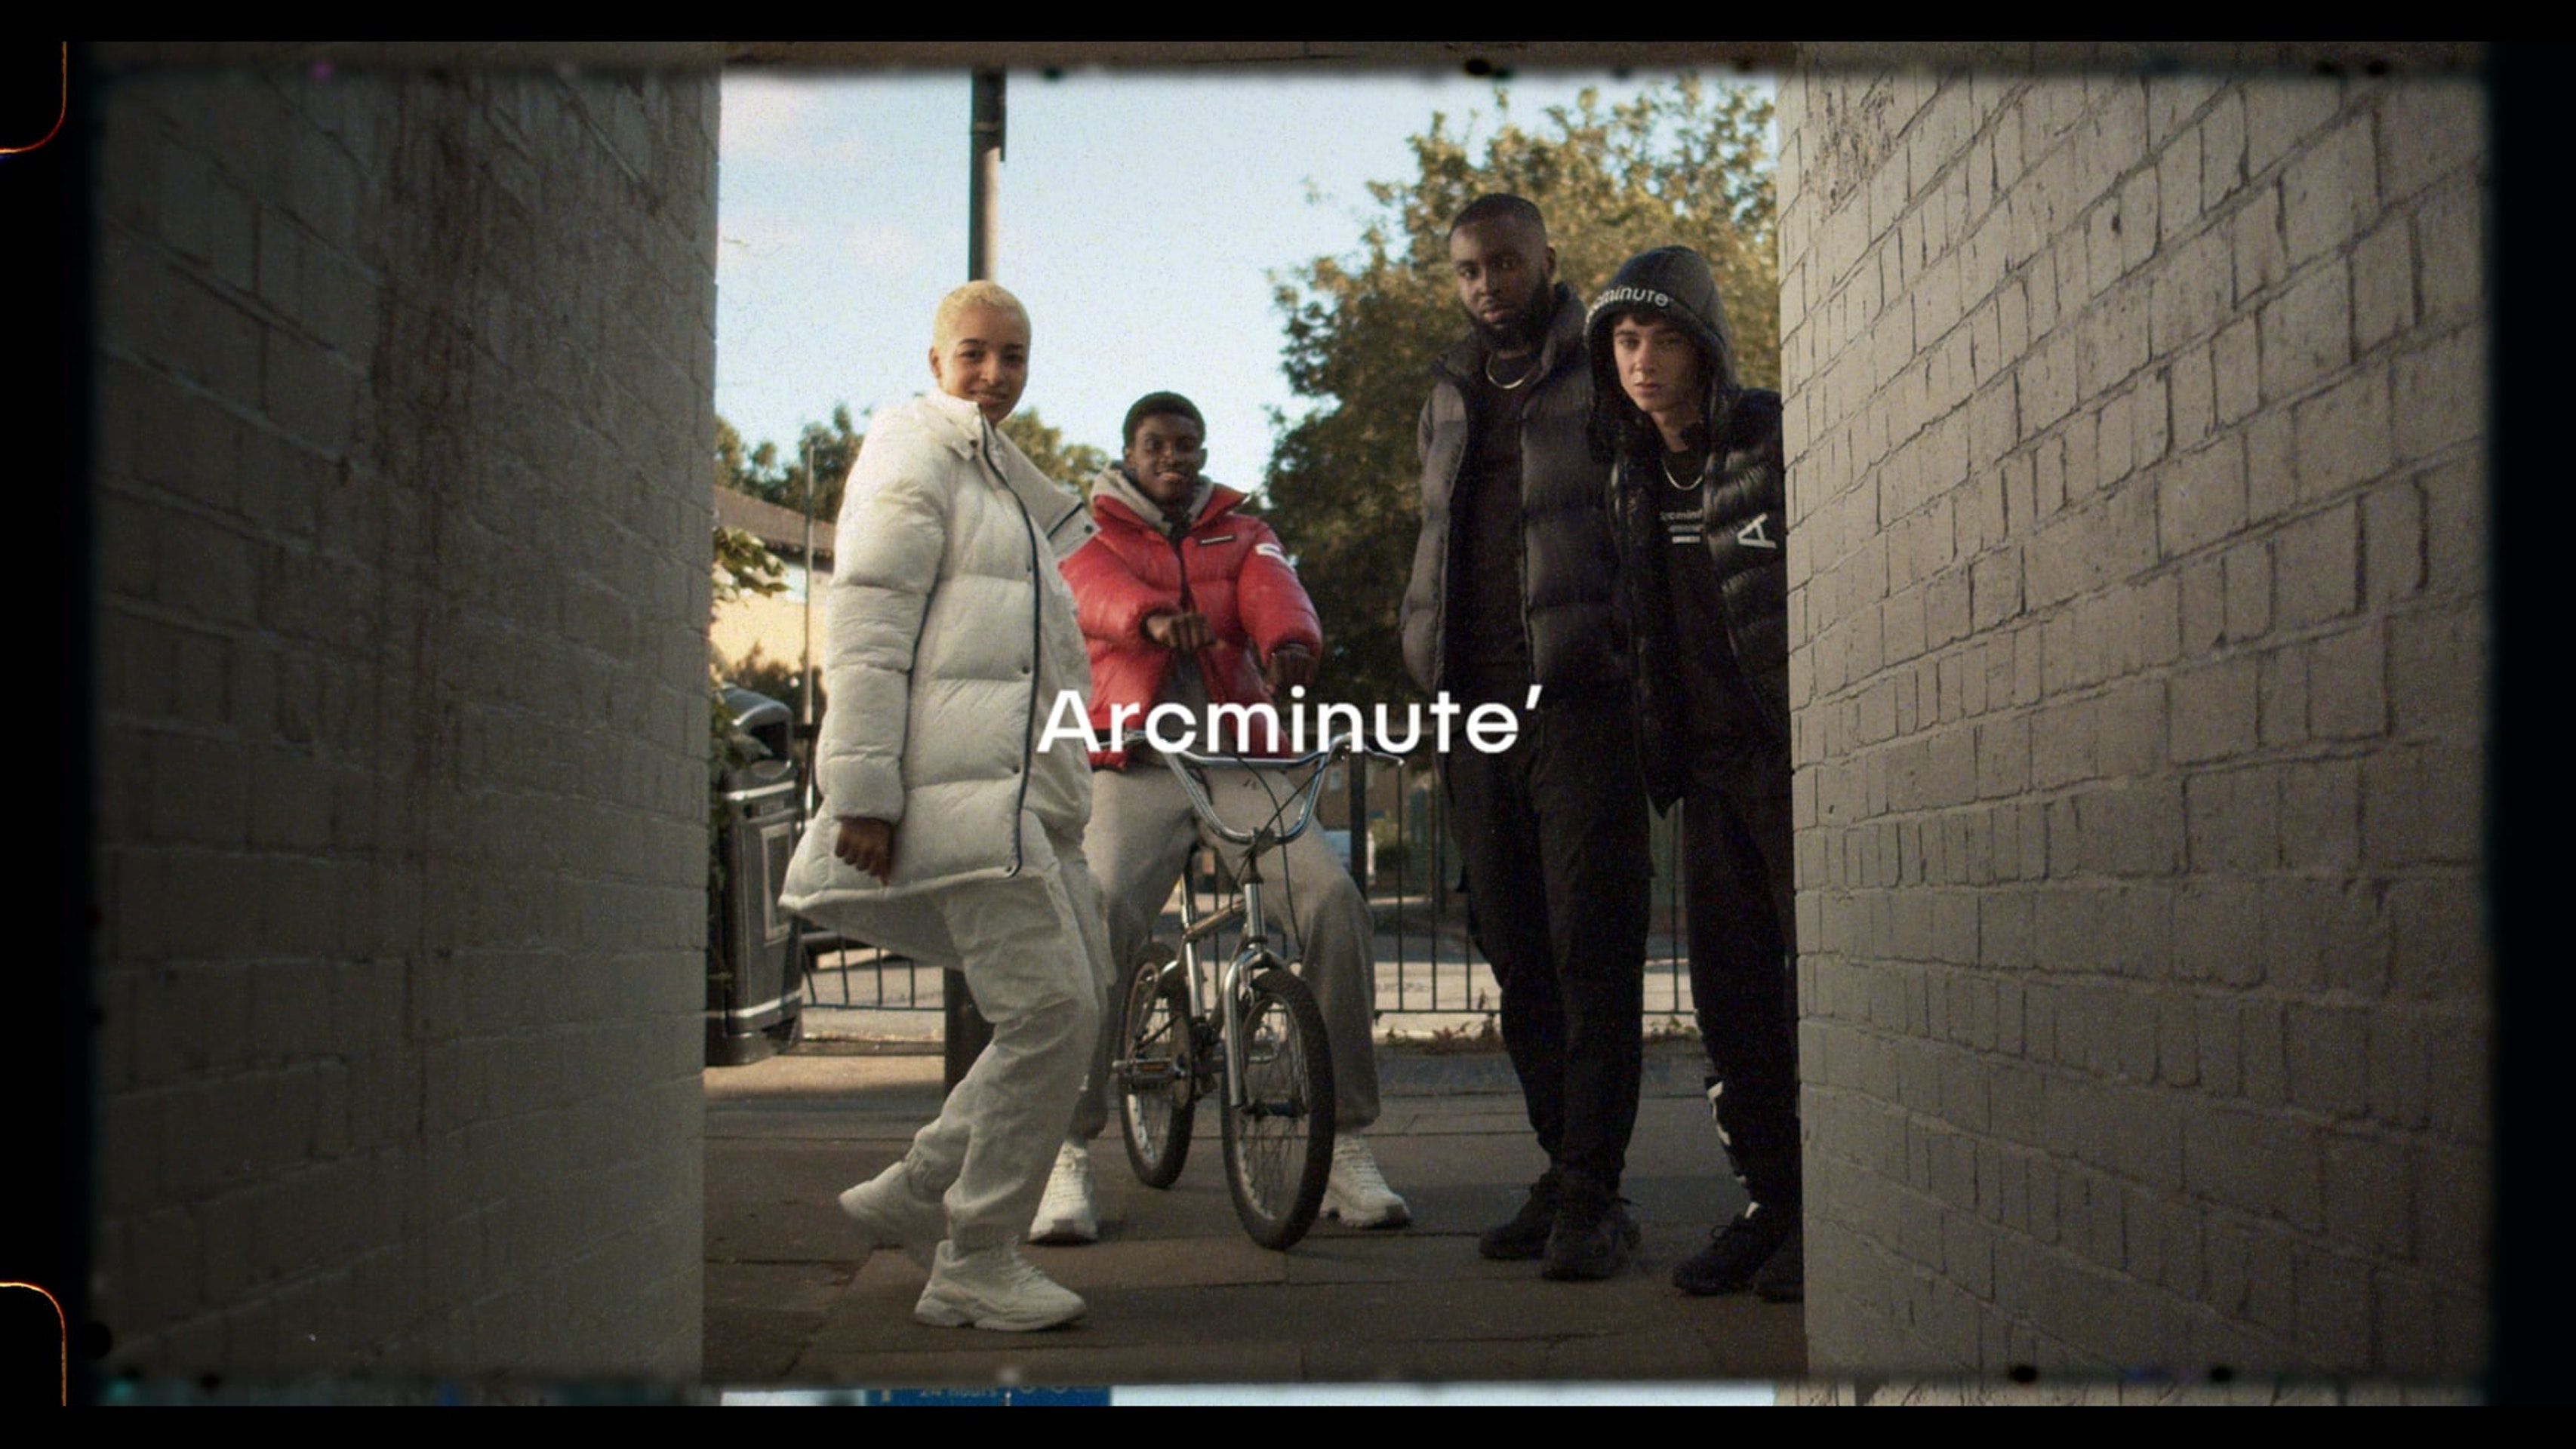 Arcminute AW20/21